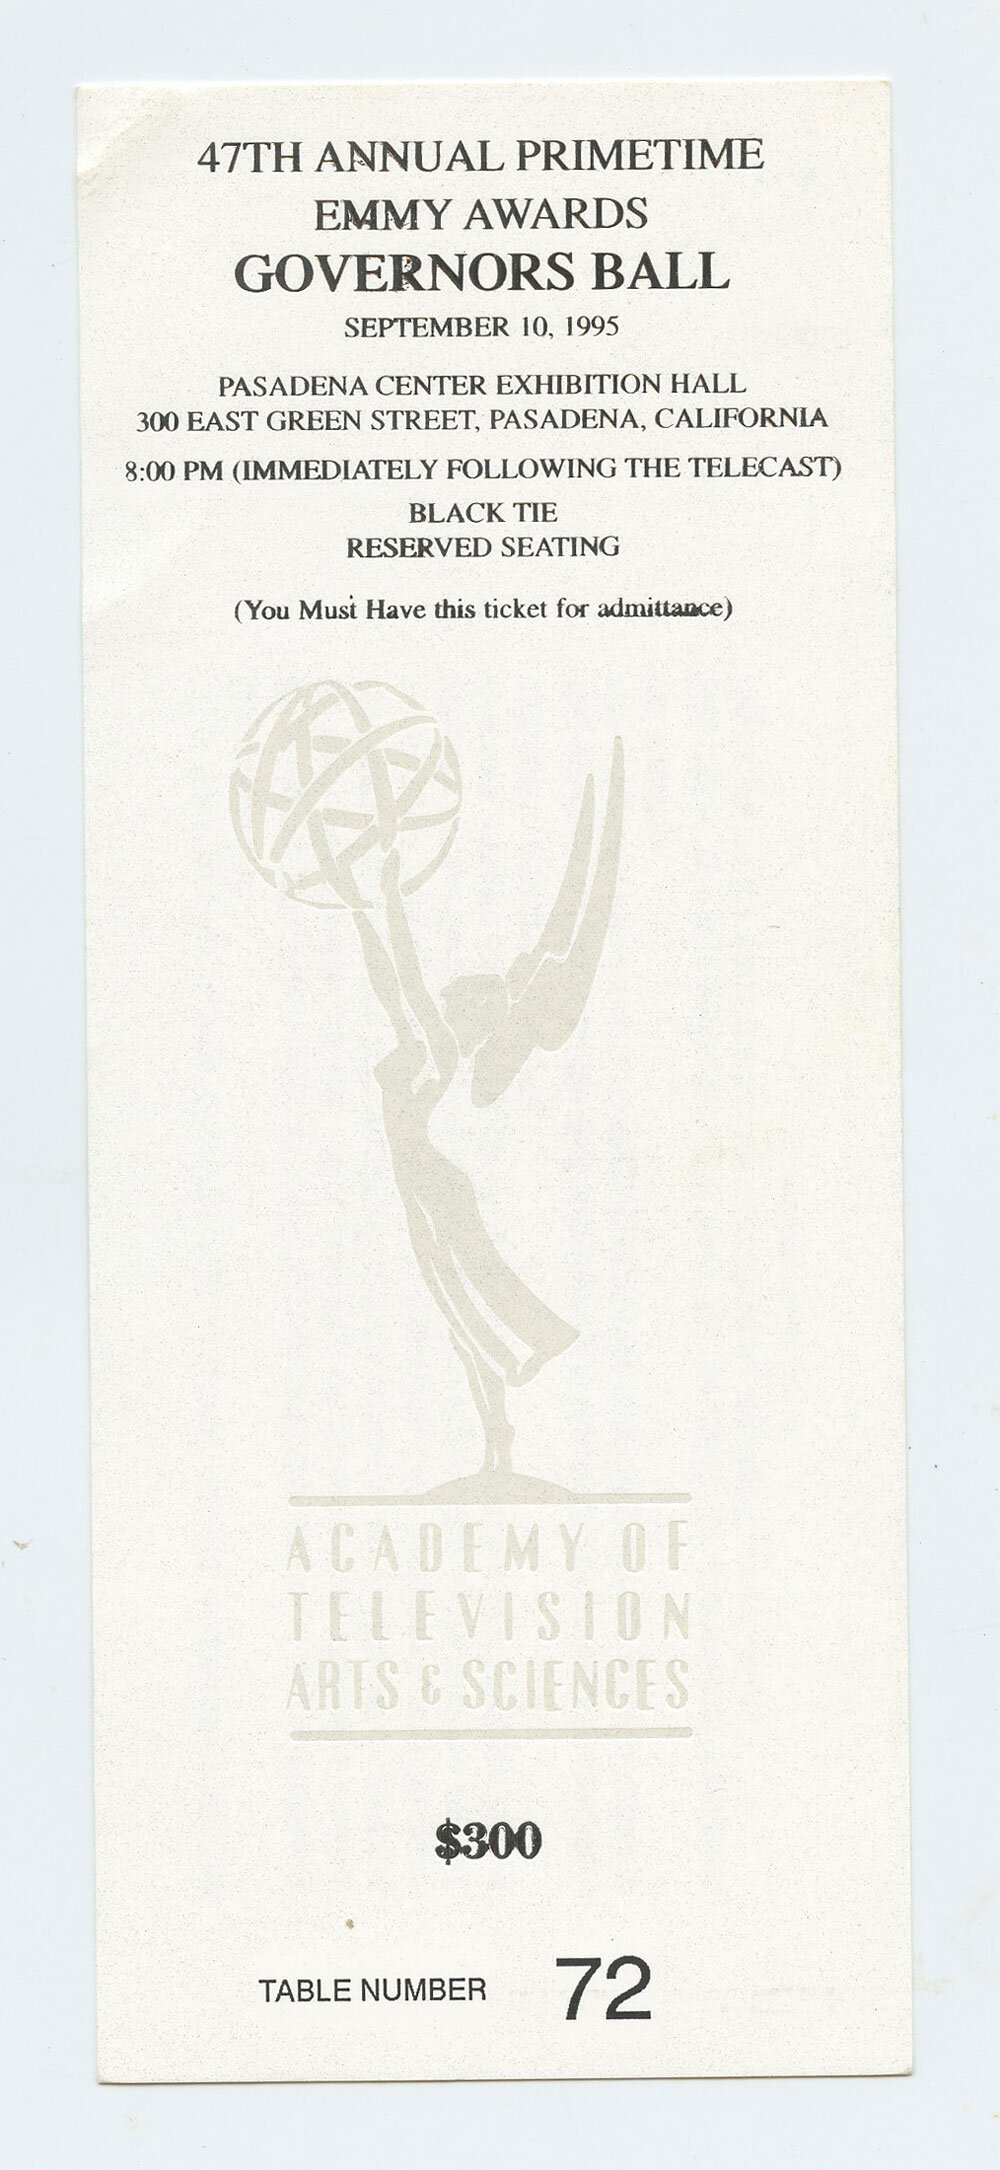 1995 47th Annual Primetime Emmy Awards Governors Ball ticket